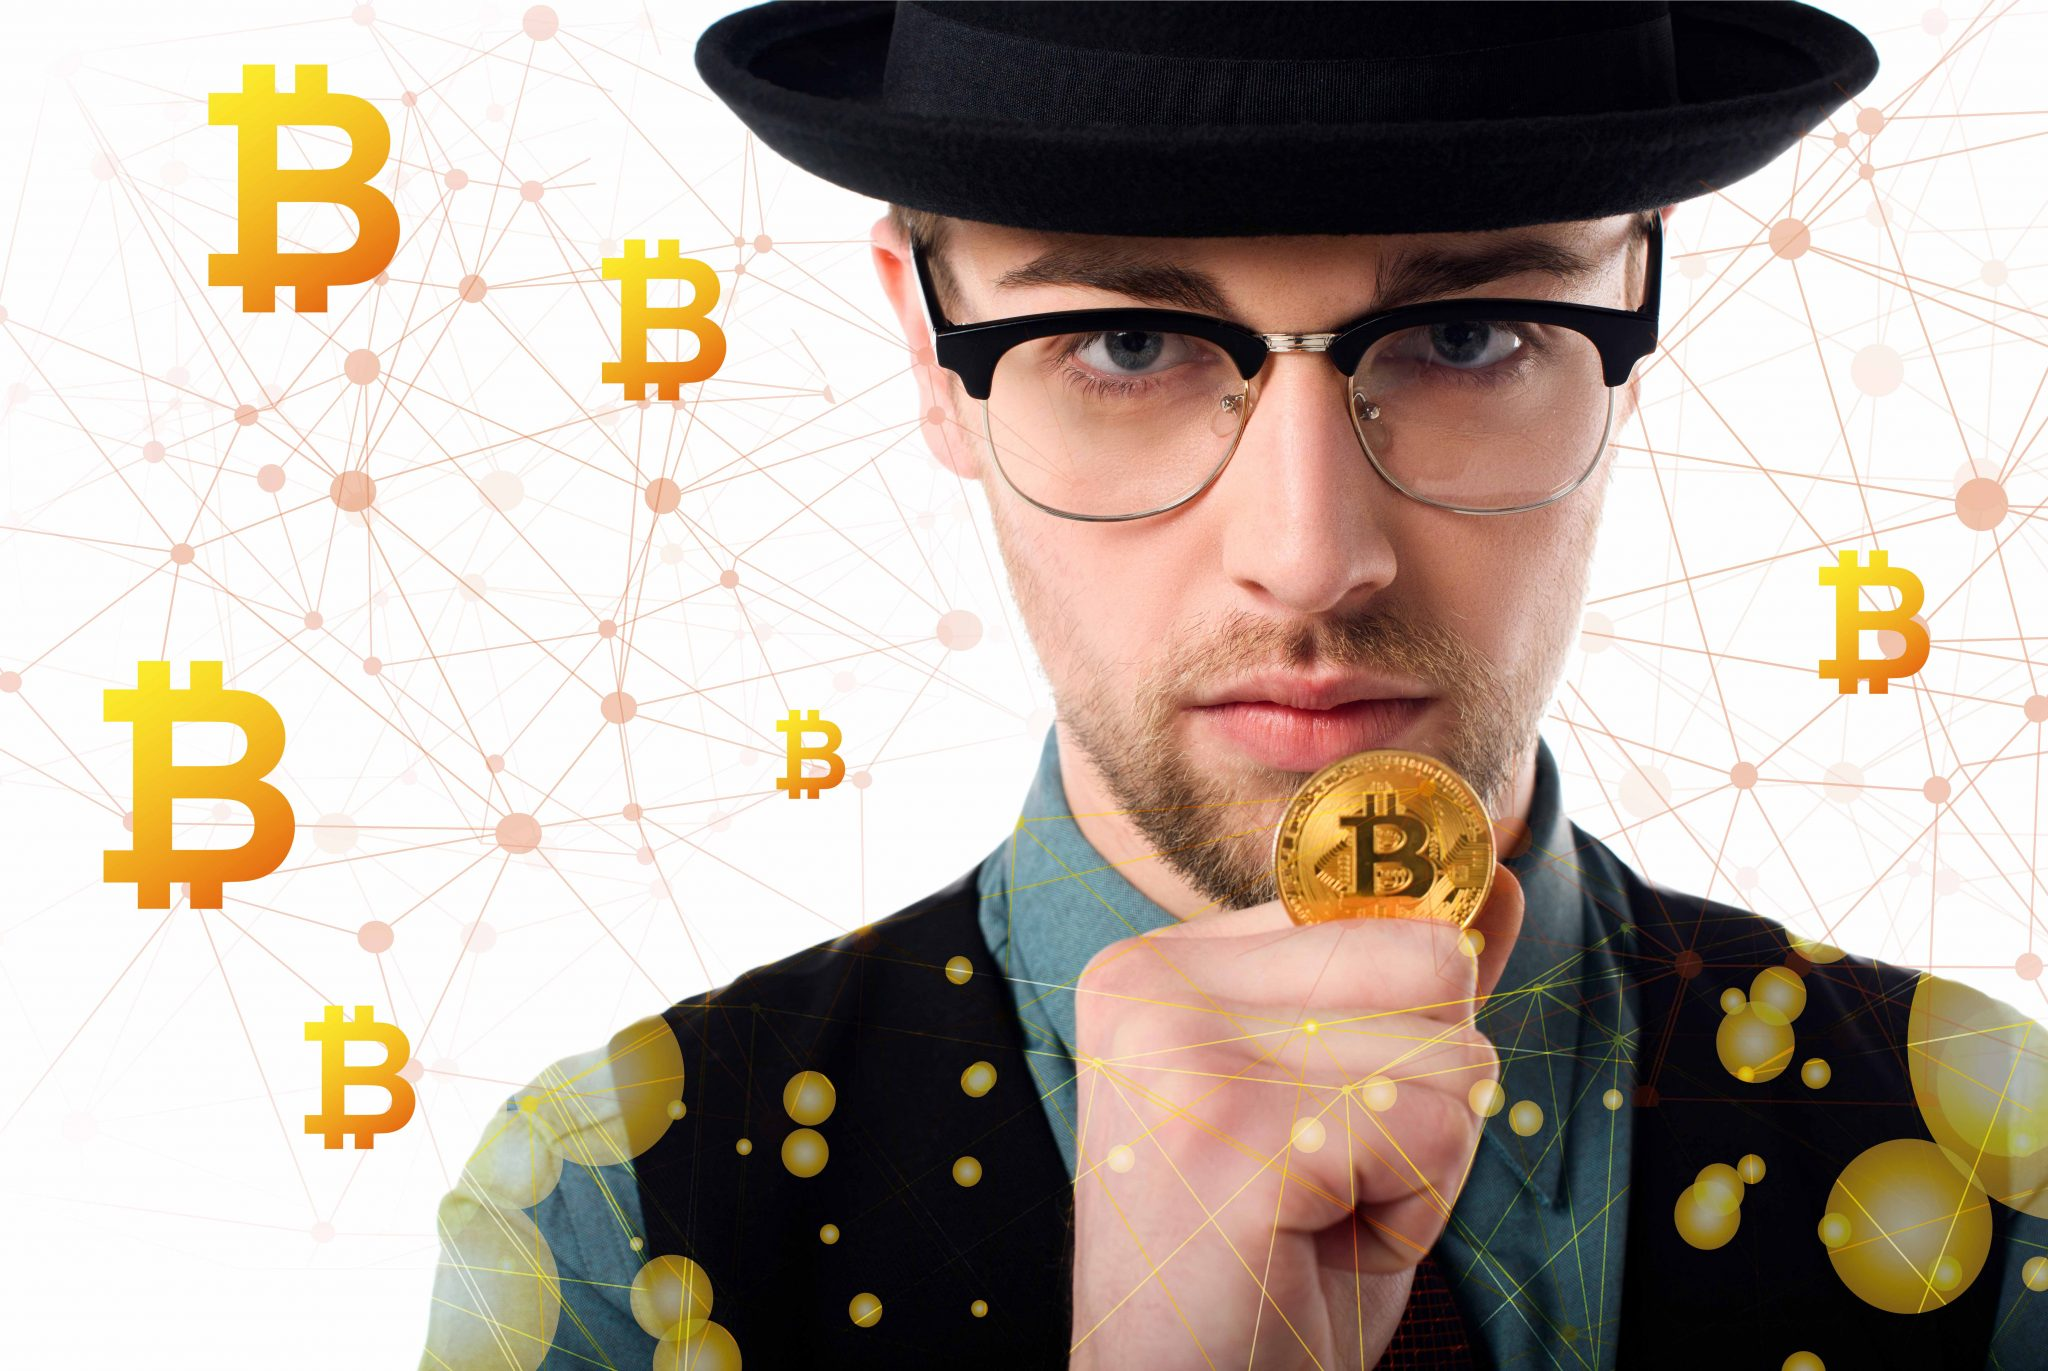 Portrait of man in eyeglasses and hat holding golden bitcoin on white